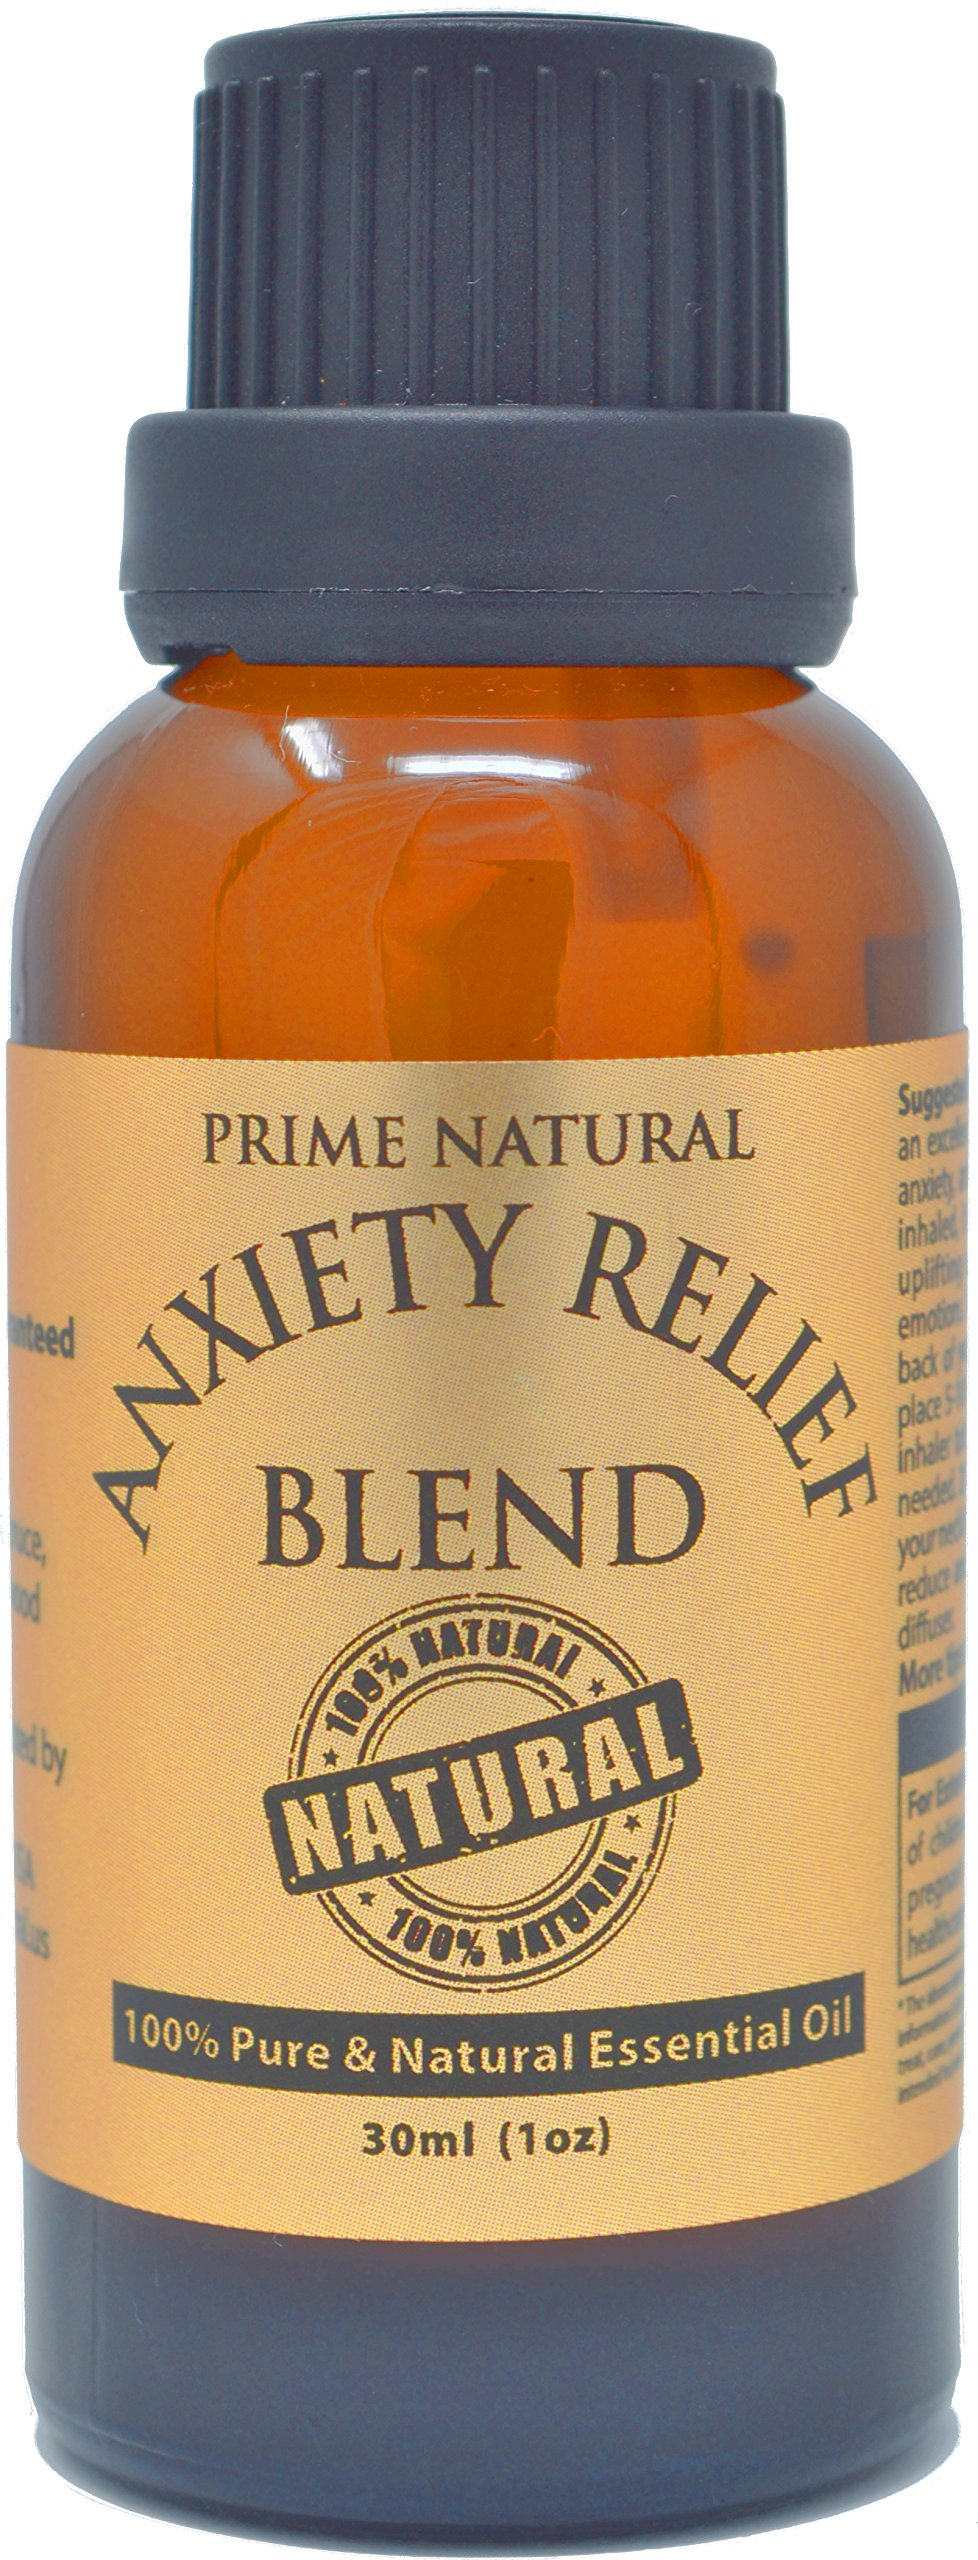 Anxiety Relief Essential Oil Blend 30ml / 1oz - 100% Natural Pure Undiluted Therapeutic Grade for Aromatherapy, Scents & Diffuser Depression, Stress Relief, Relaxation, Boost Mood, Uplifting, Calming